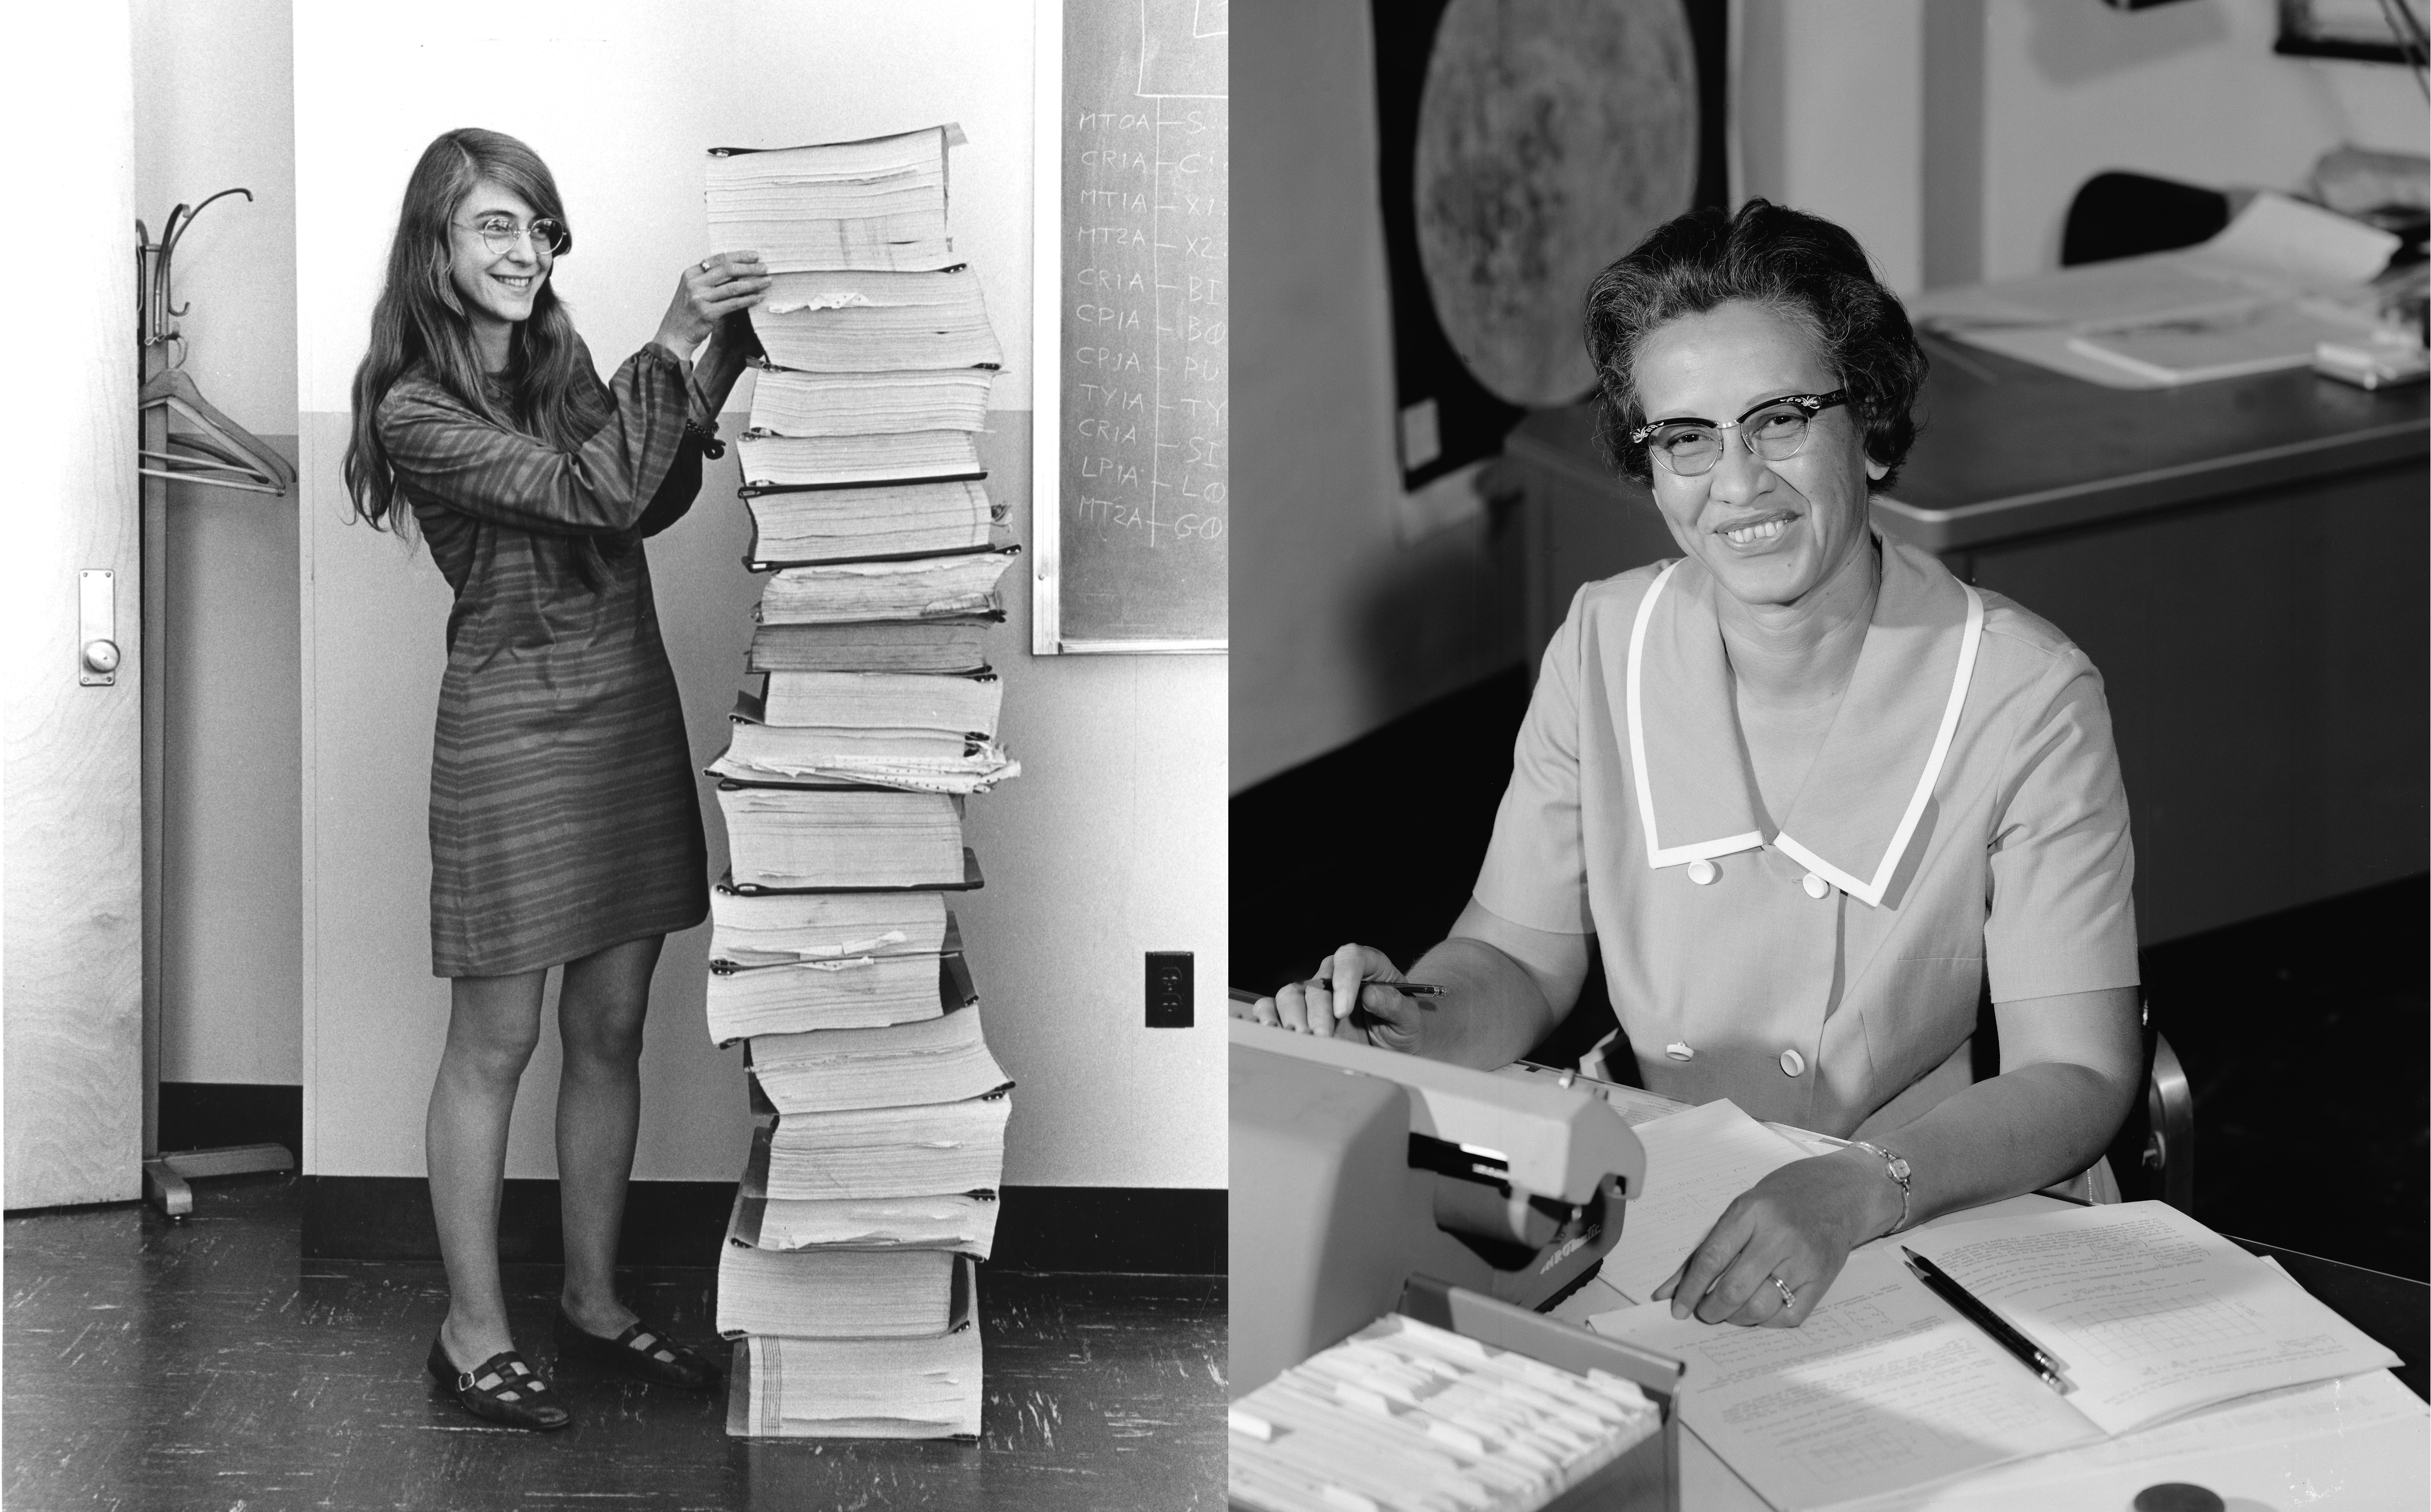 Left: an image of a women in a 1960s dress standing beside a stack of paper as tall as she is. Right: an African-American woman working on an early desktop computer.